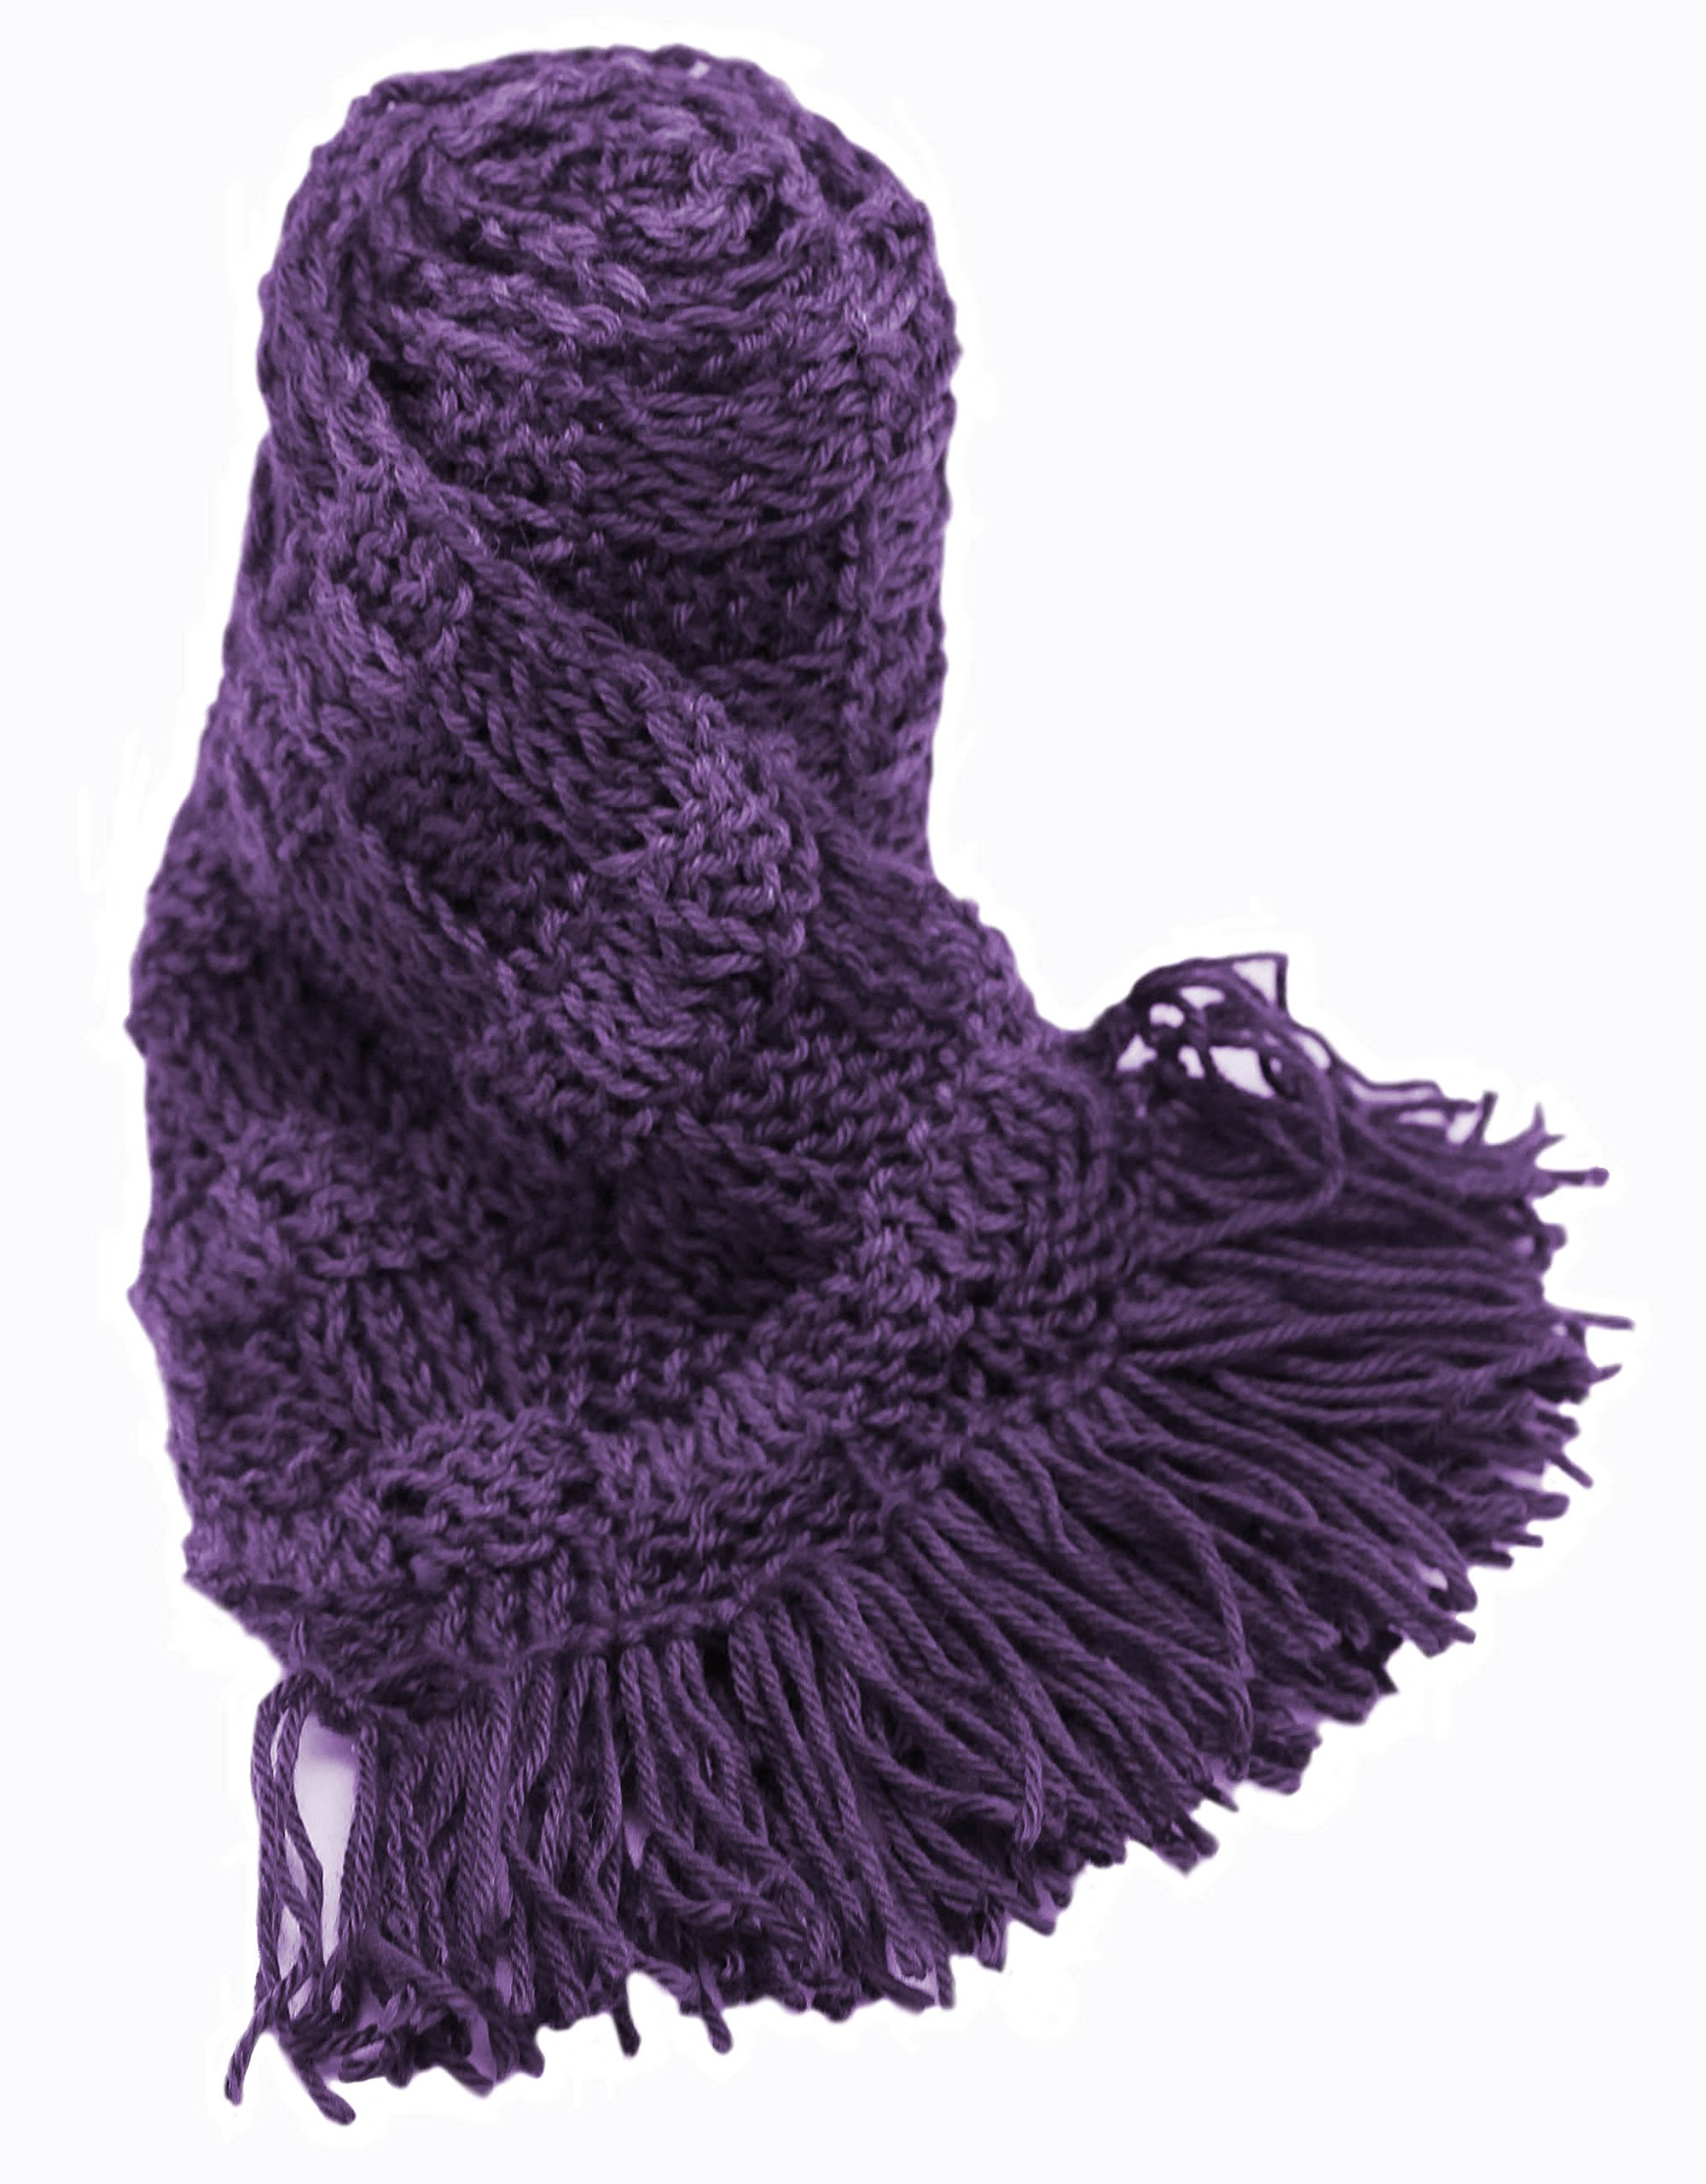 Handmade ALPACA Scarf - Purple and Lavender (CUSTOM MADE ORDER)